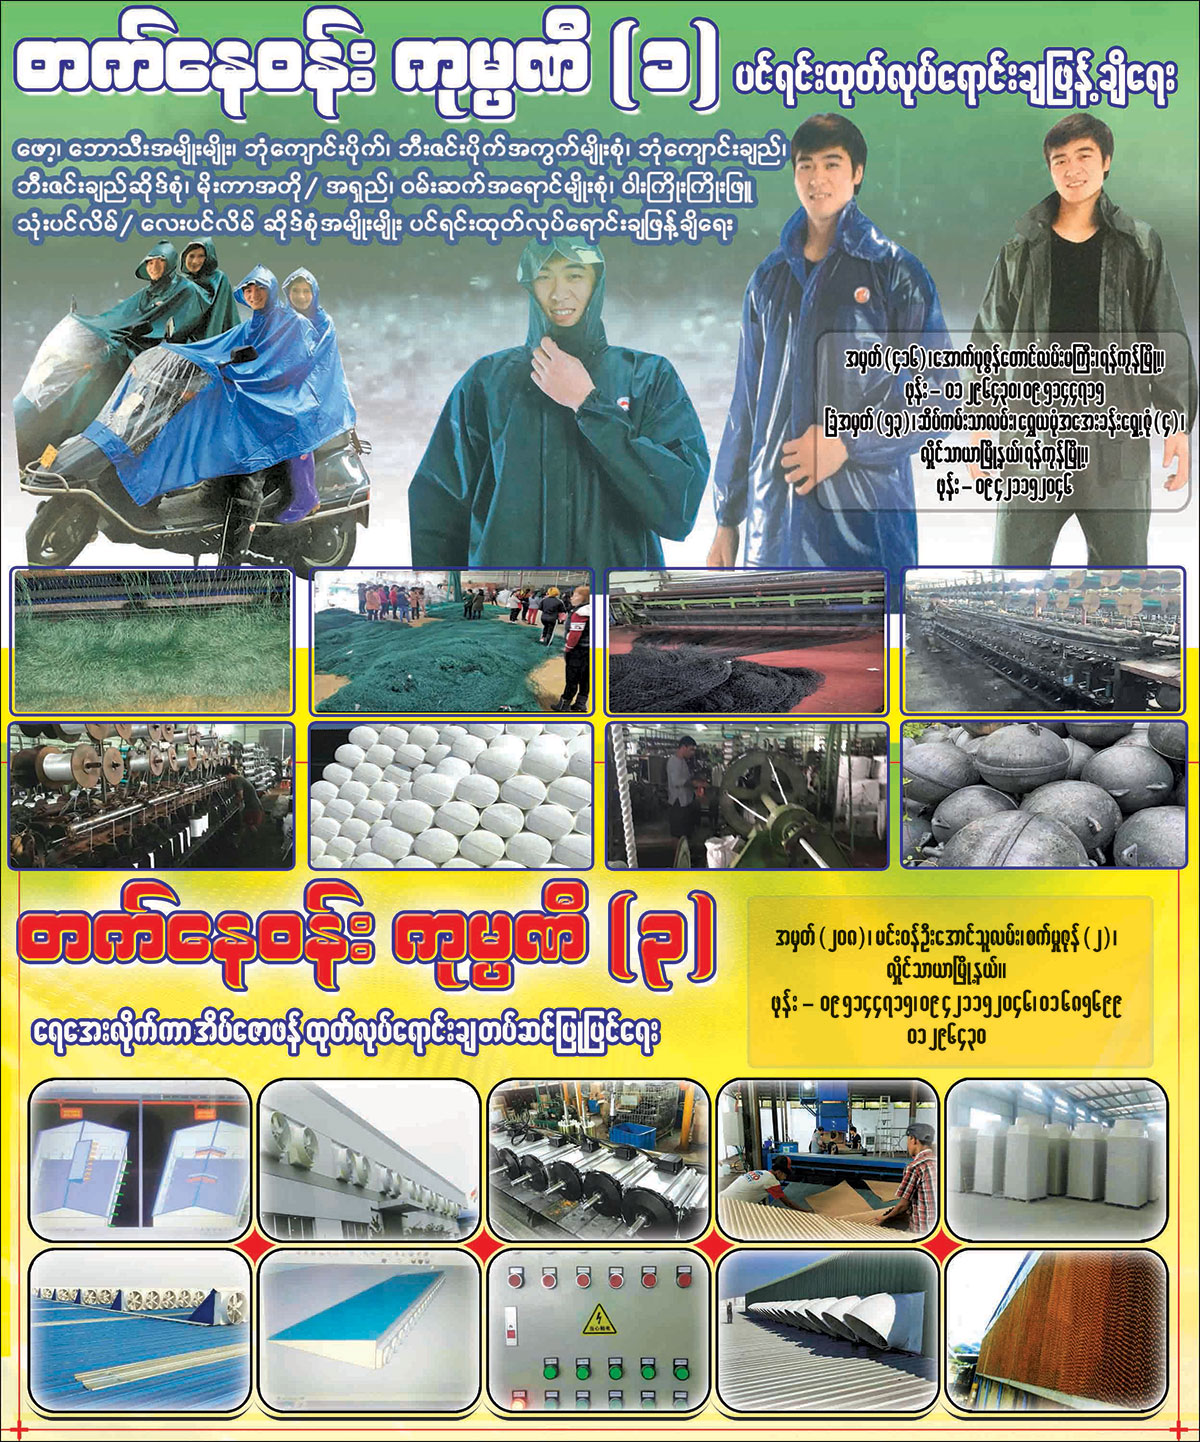 Tet Nay WinFishing & Angling Equipment